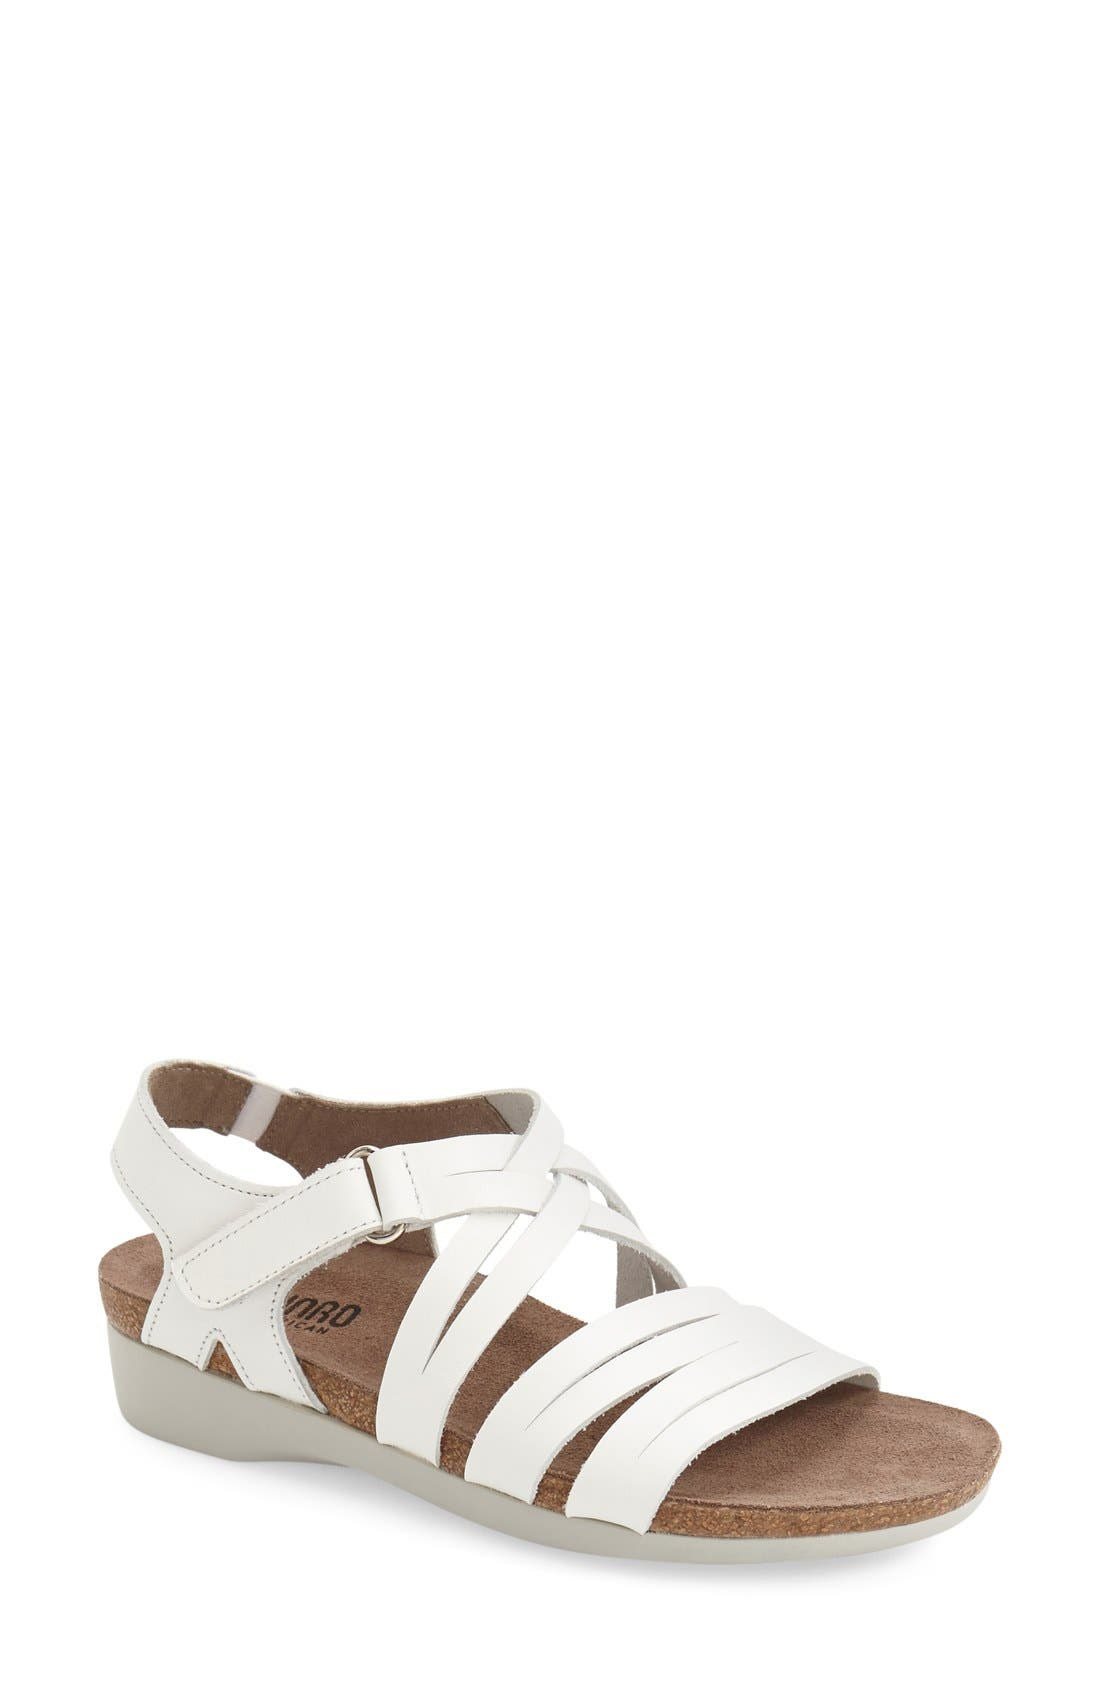 'Kaya' Strappy Sandal,                             Main thumbnail 1, color,                             White Leather